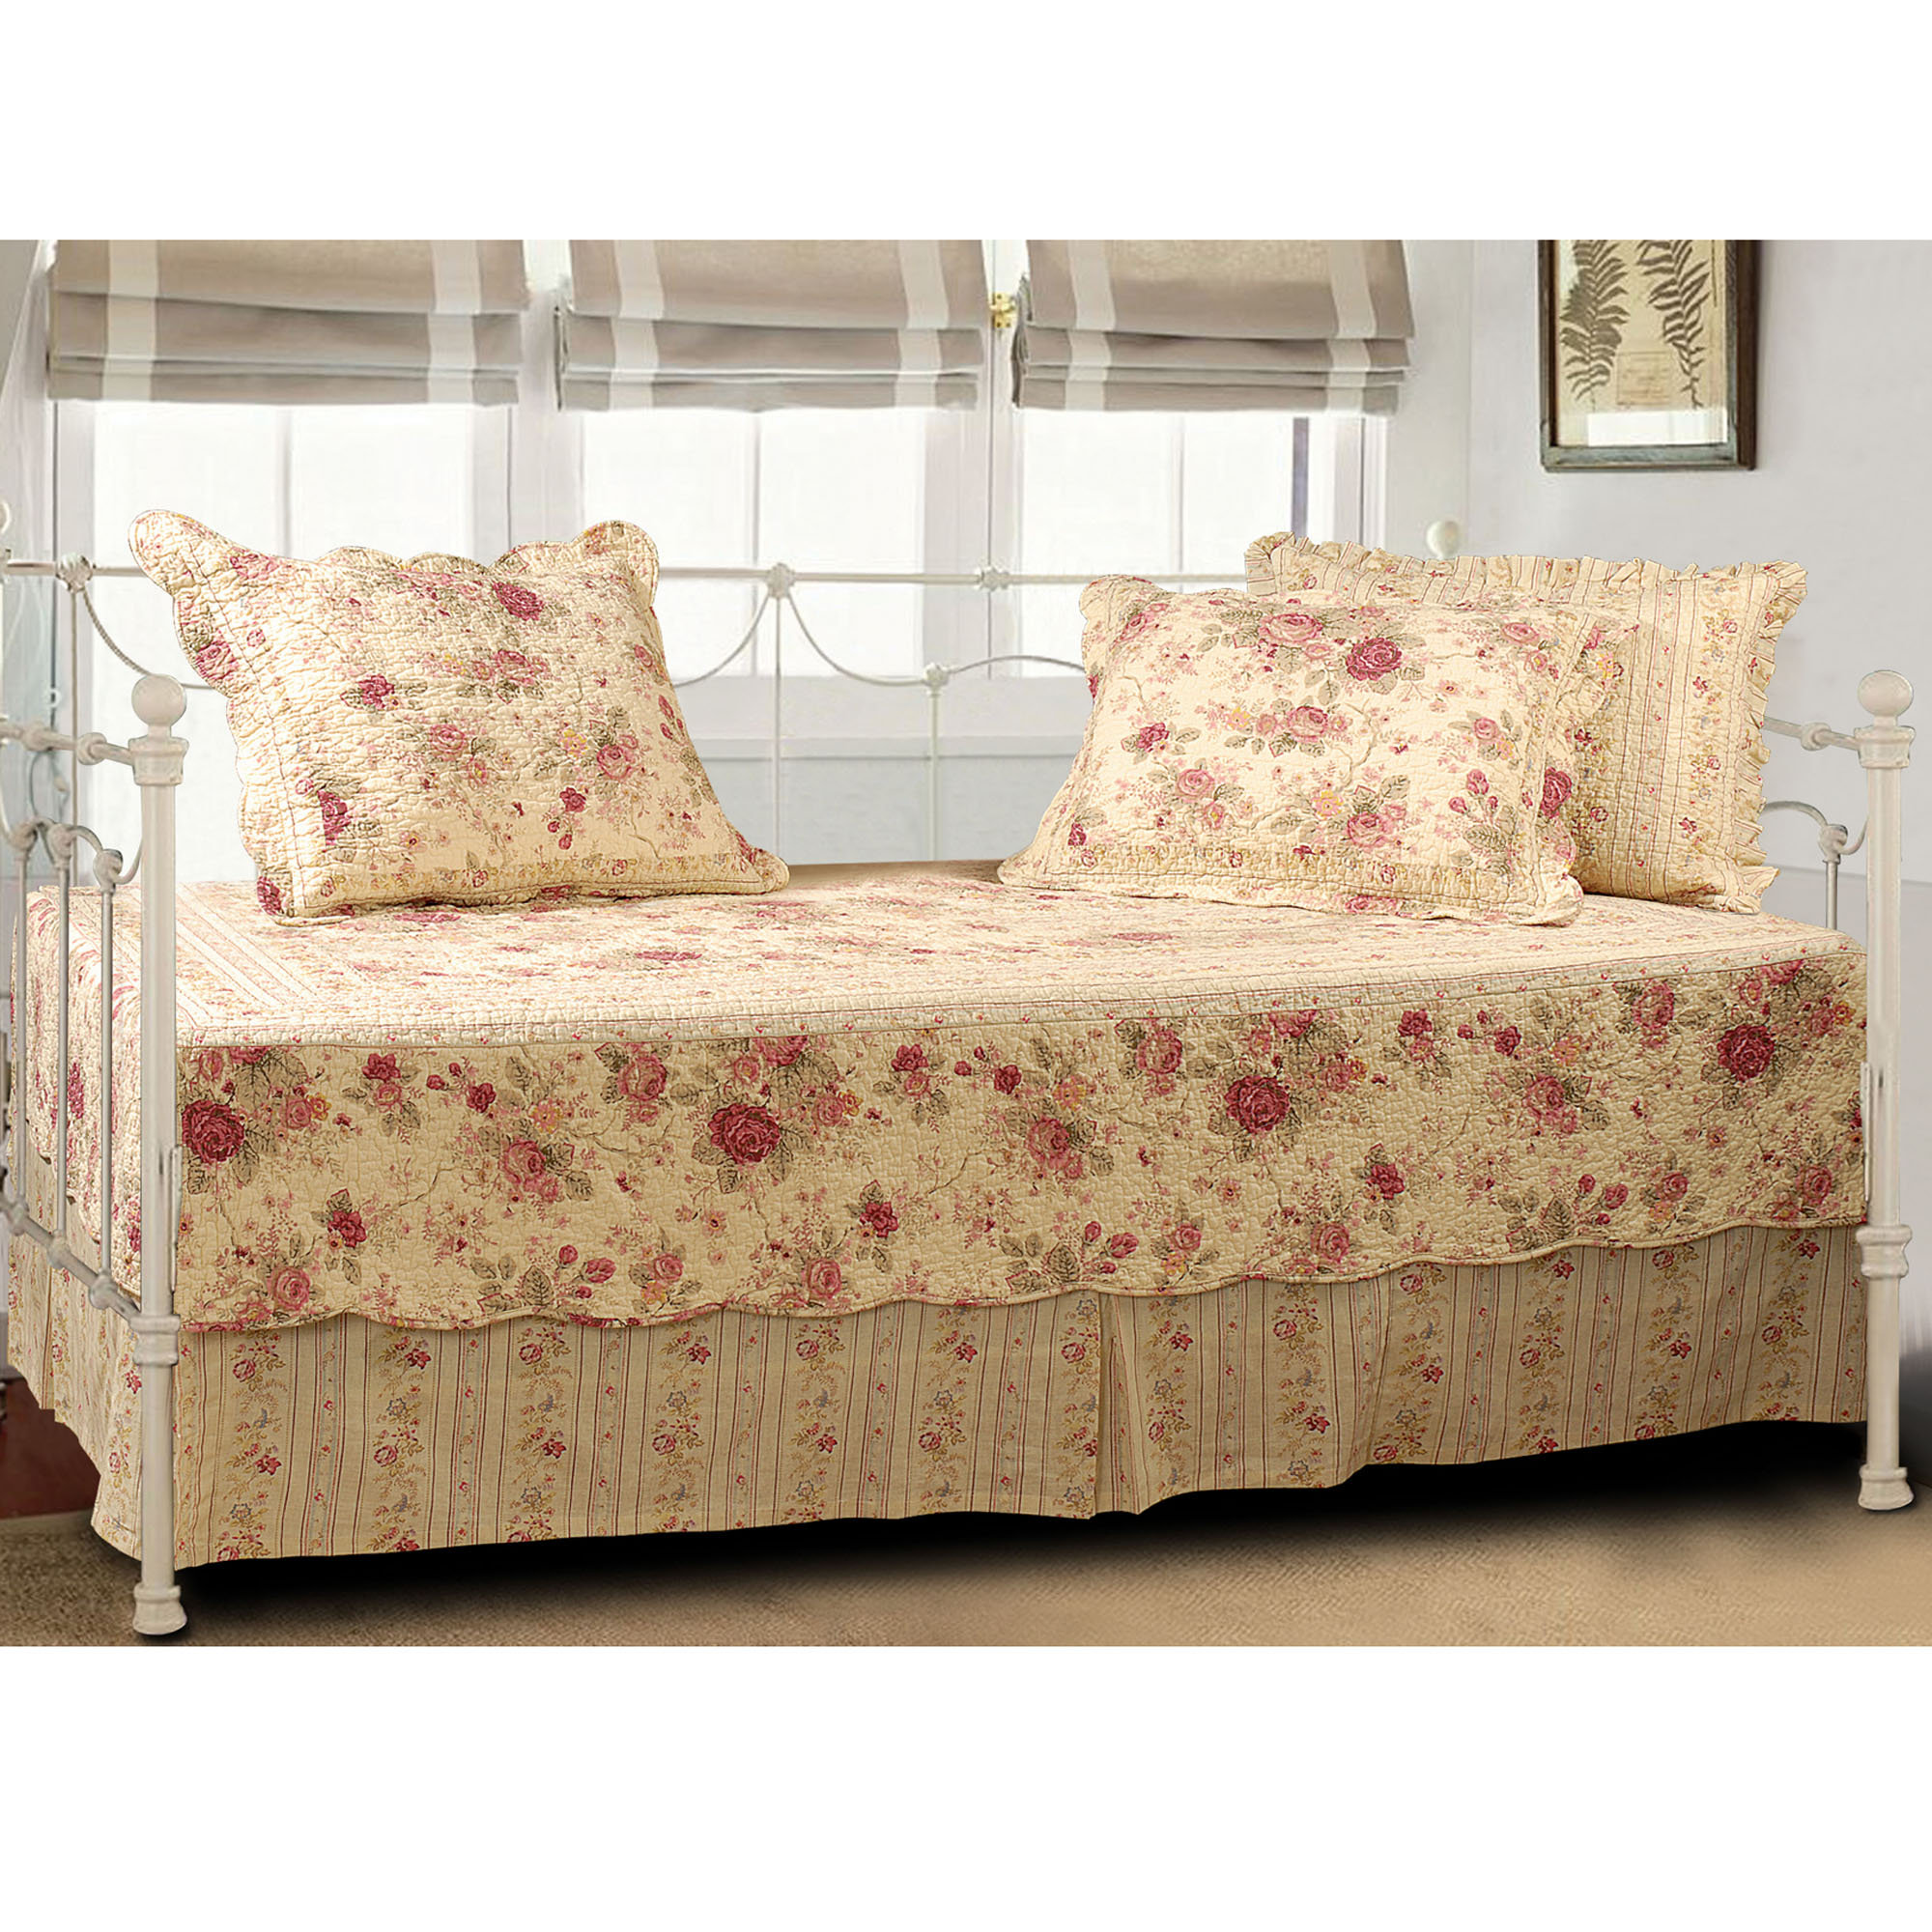 Day Bed Covers Ideas HomesFeed